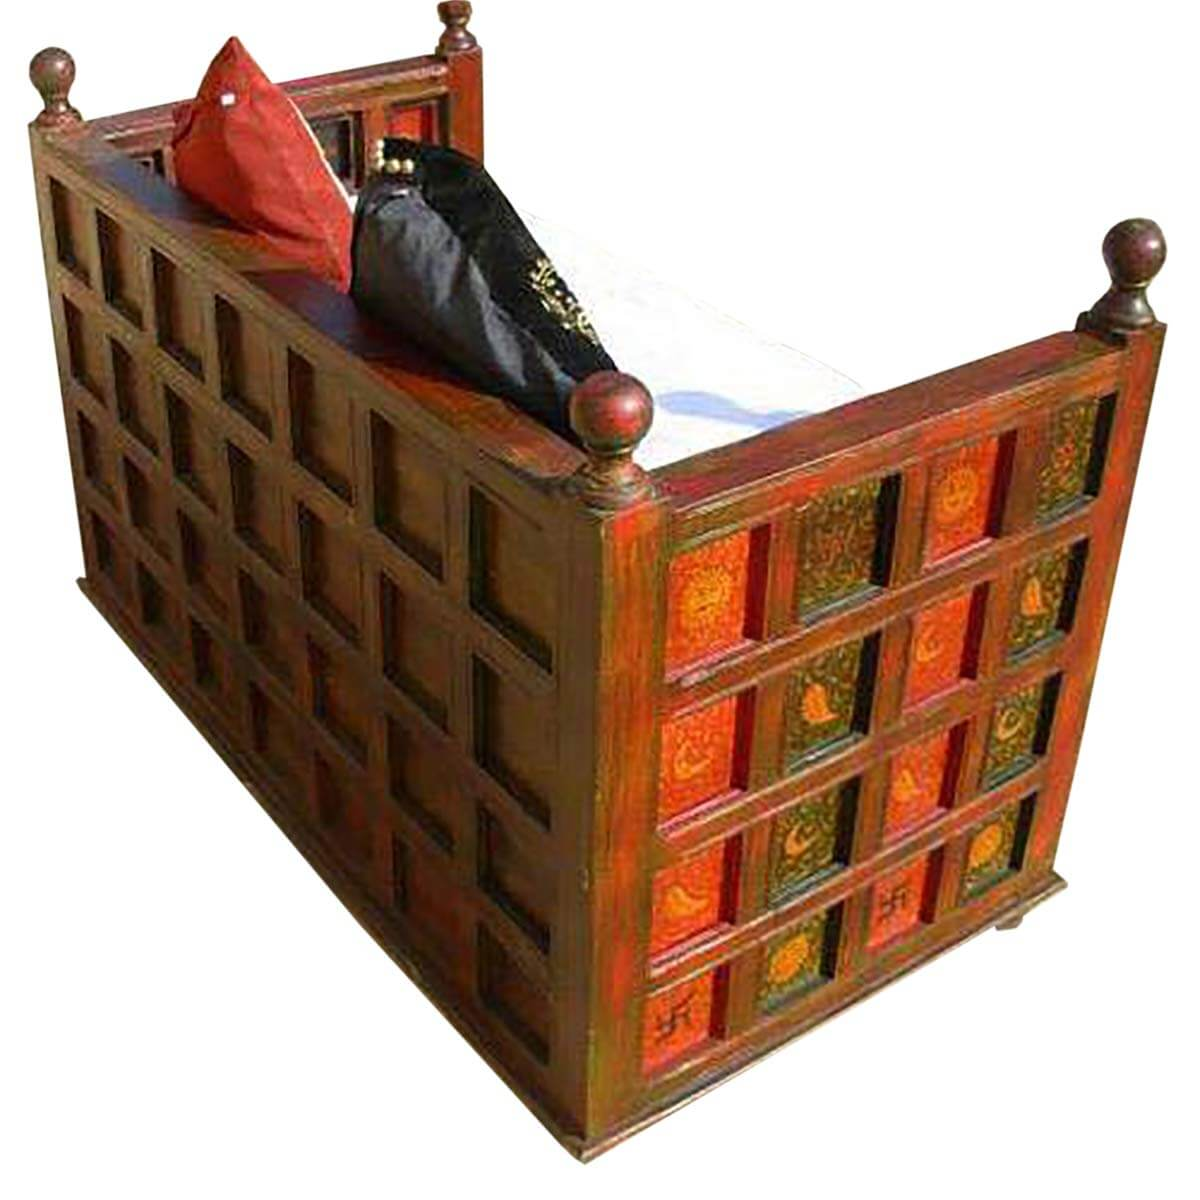 solid wood bench sofa couch storage chest furniture. Black Bedroom Furniture Sets. Home Design Ideas